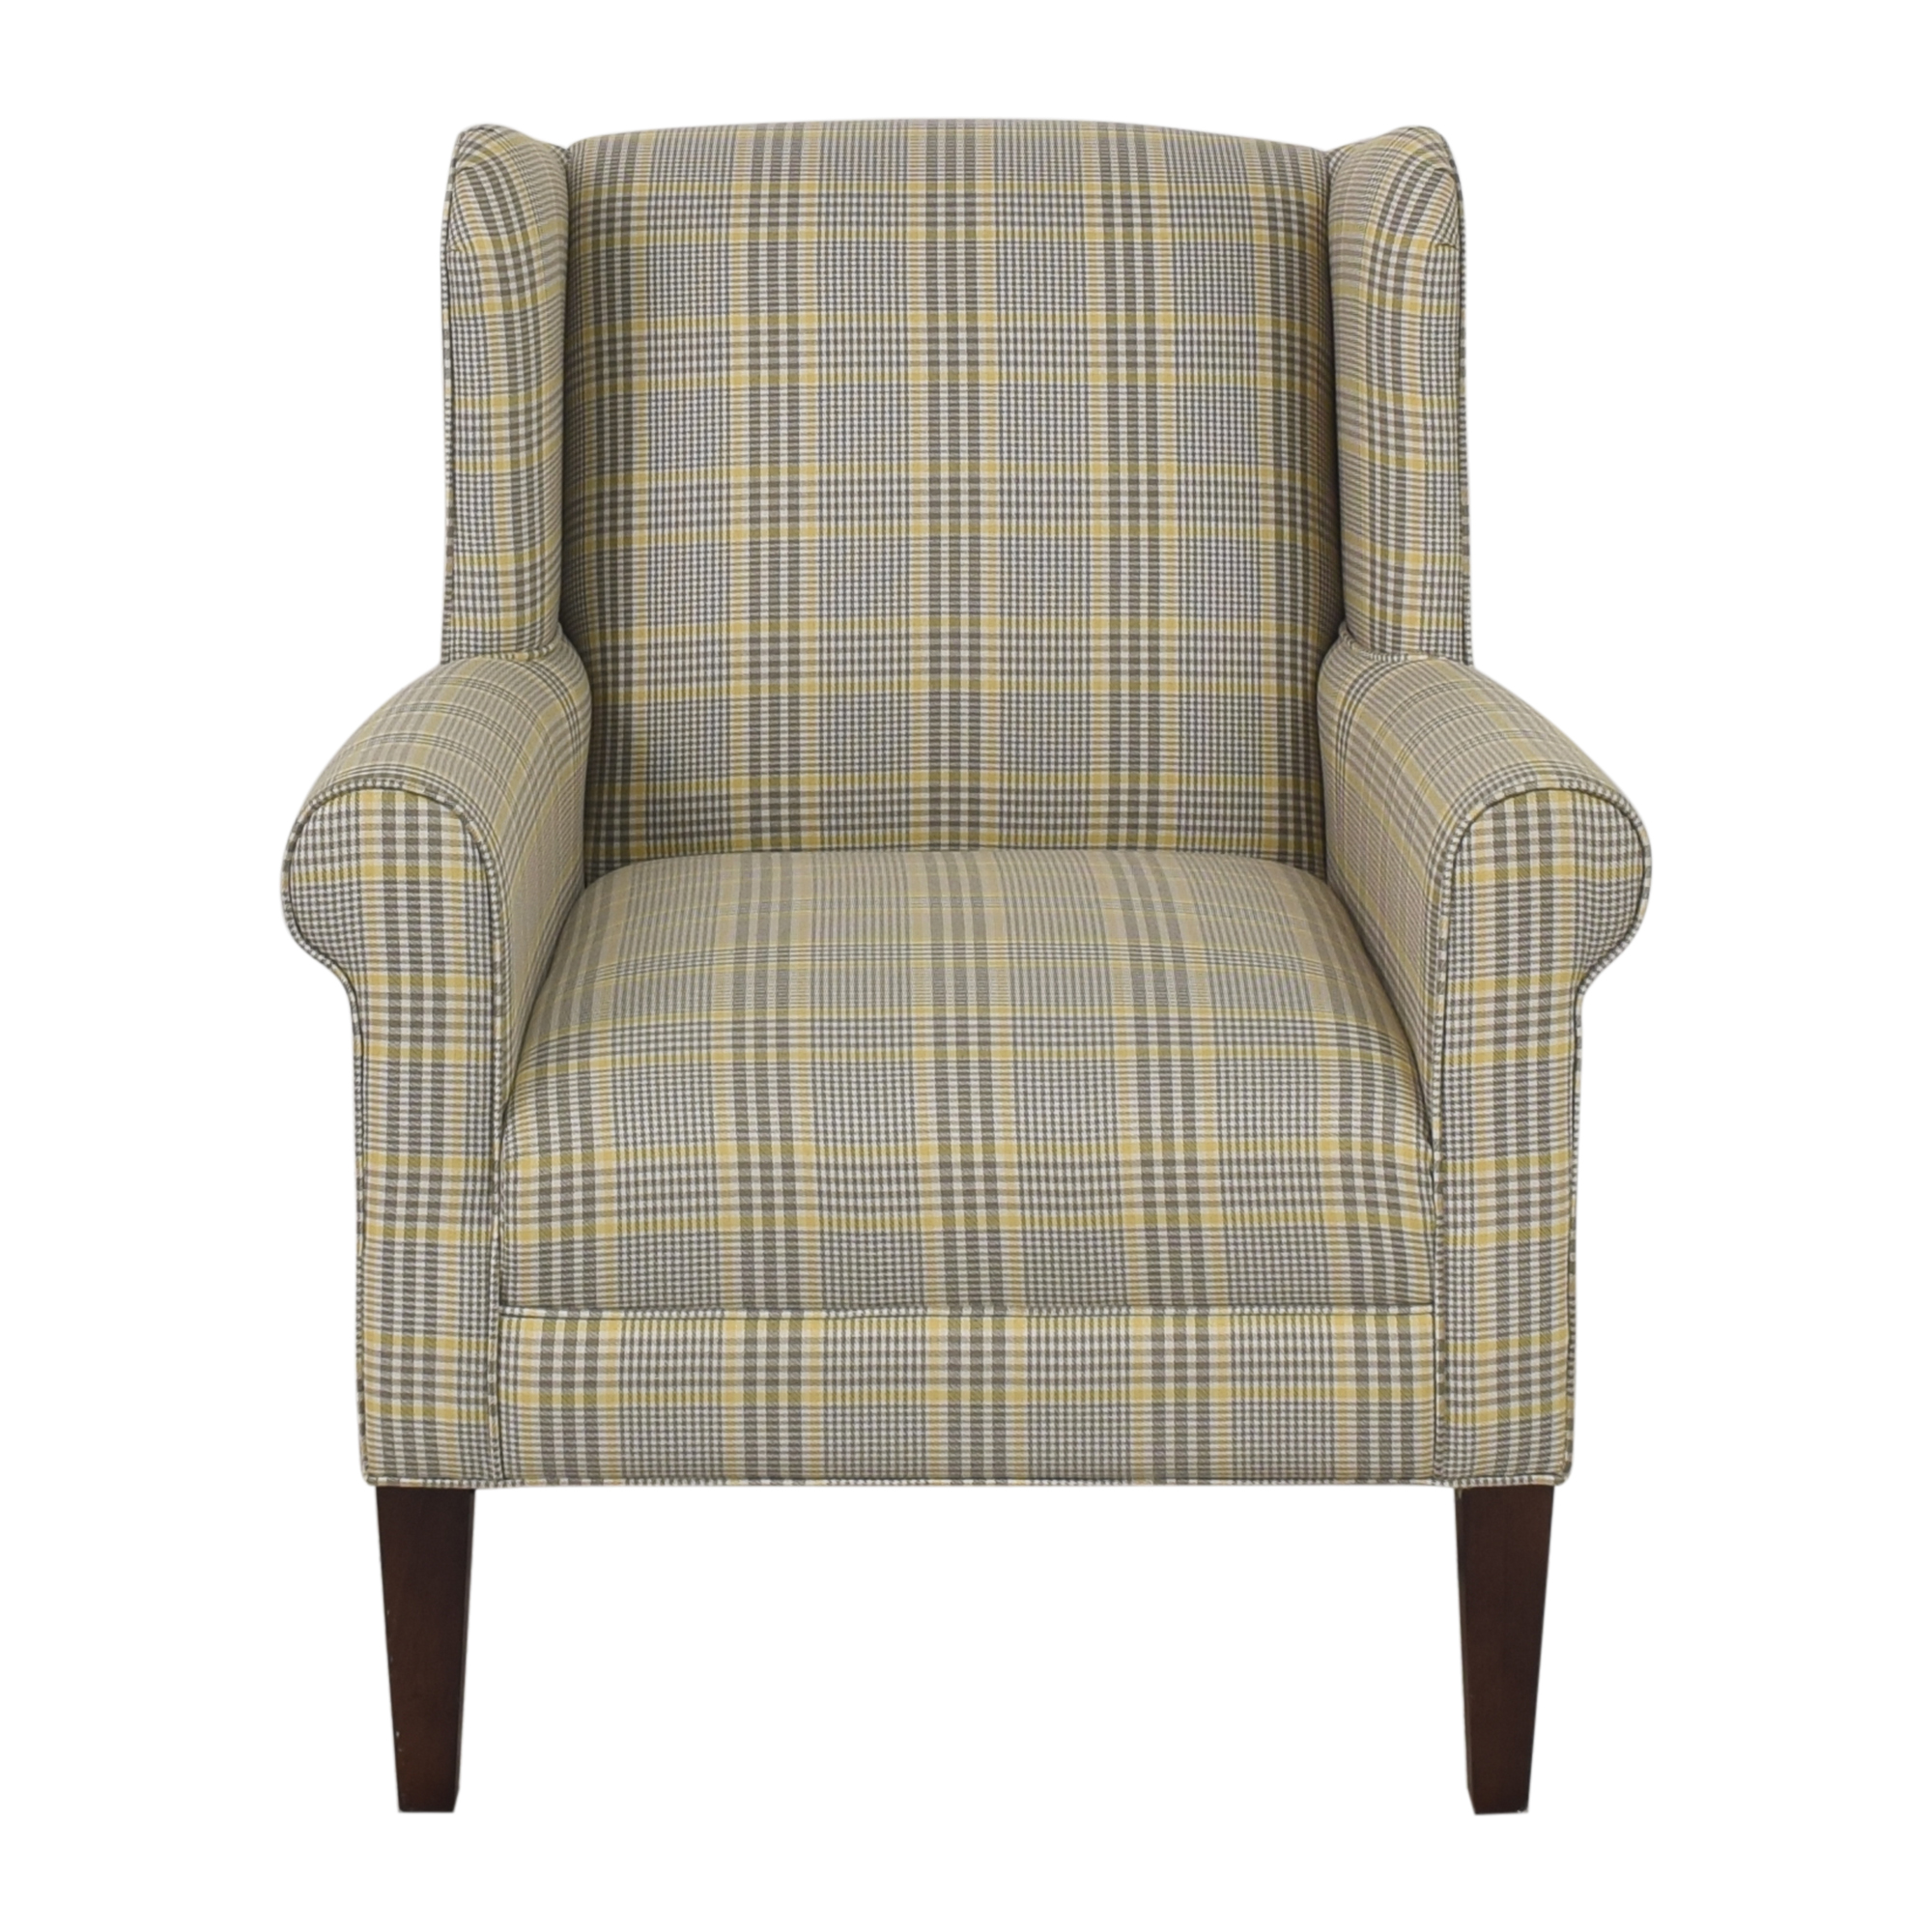 Bassett Furniture Bassett Furniture Georgia Accent Chair coupon